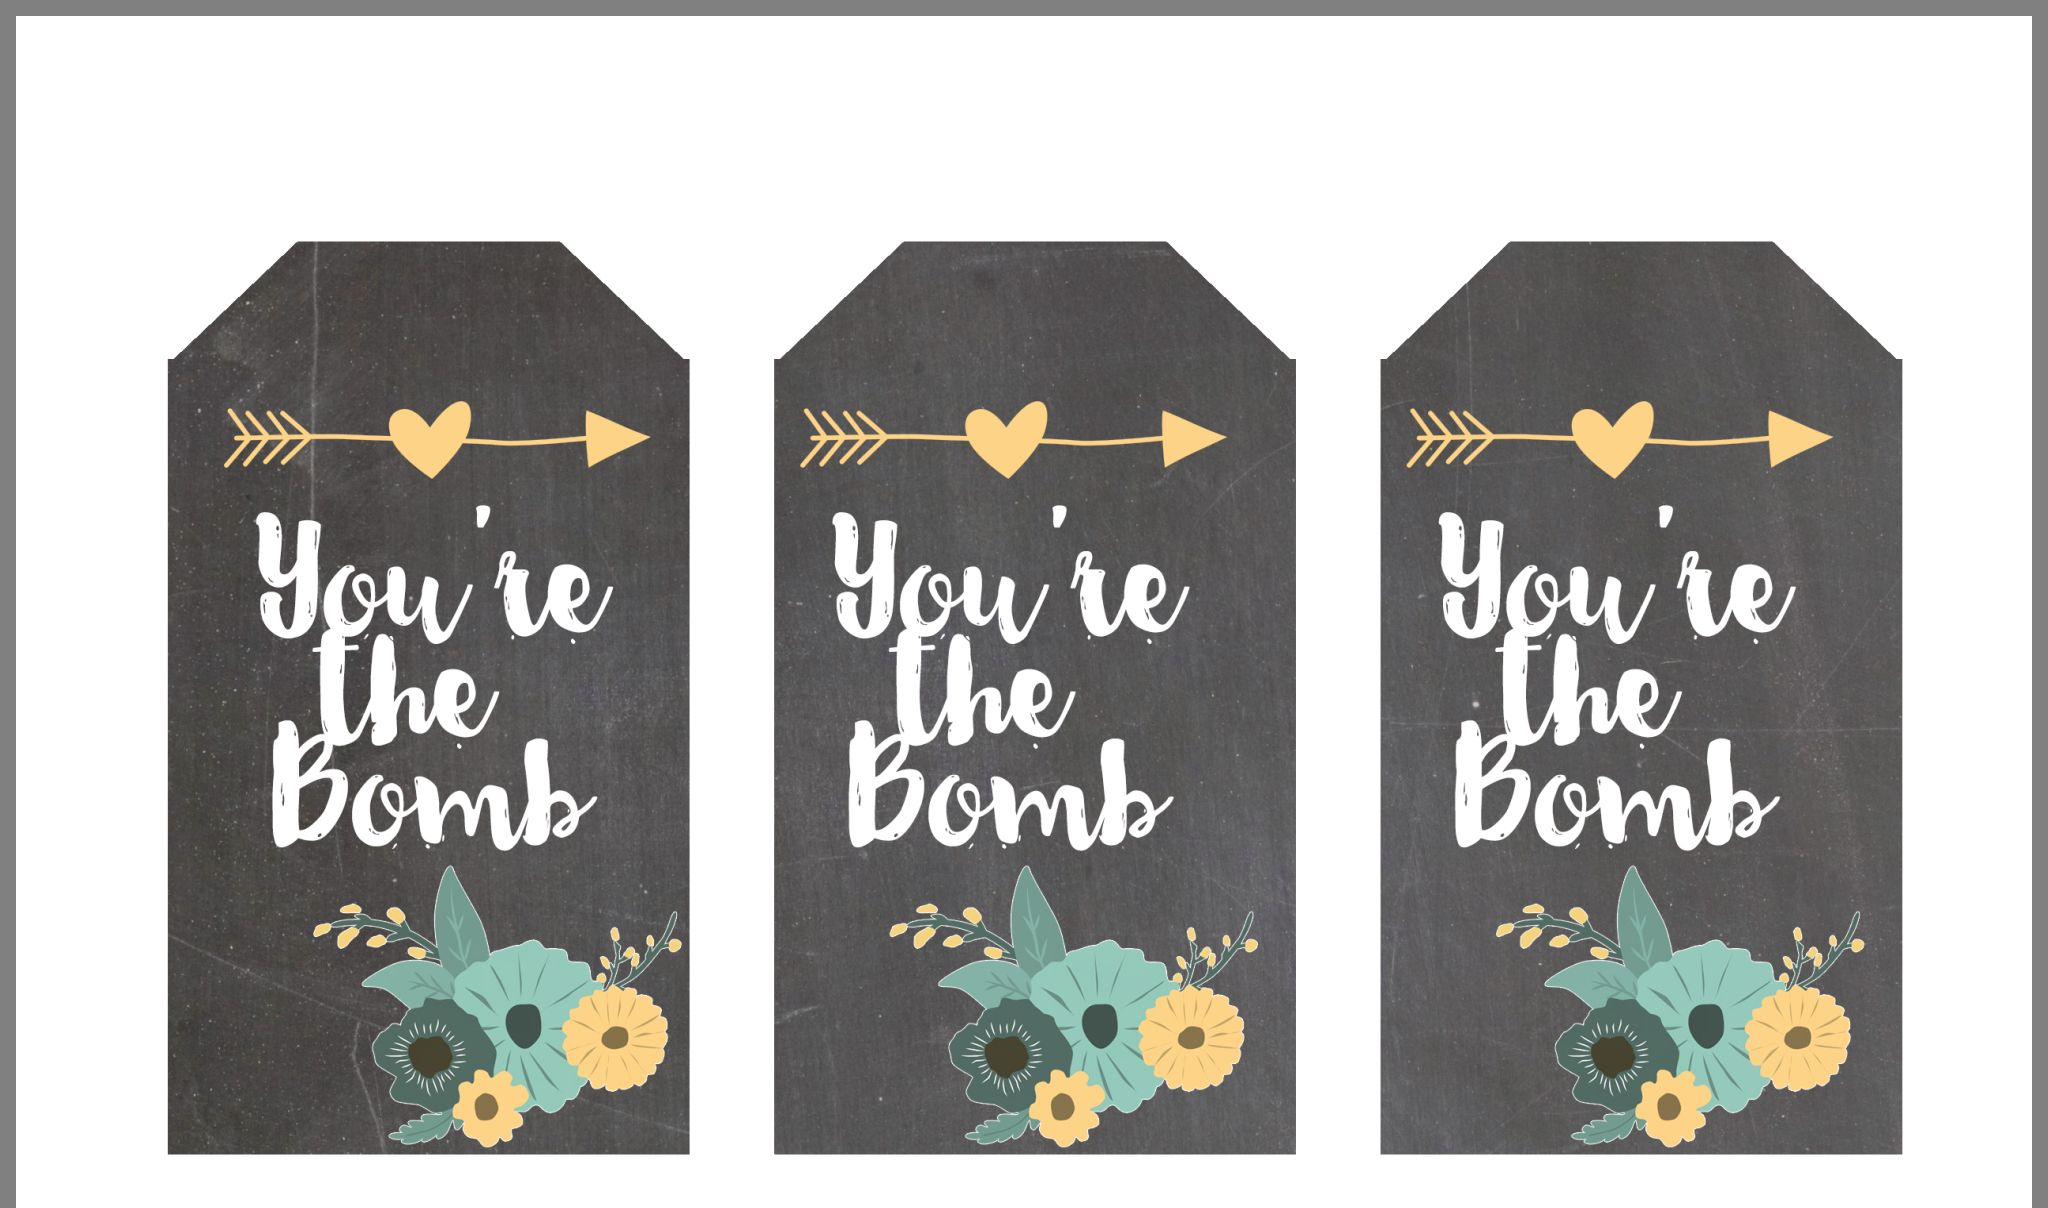 Pin by Gayle Massey on Gifts in 2020 Youre the bomb